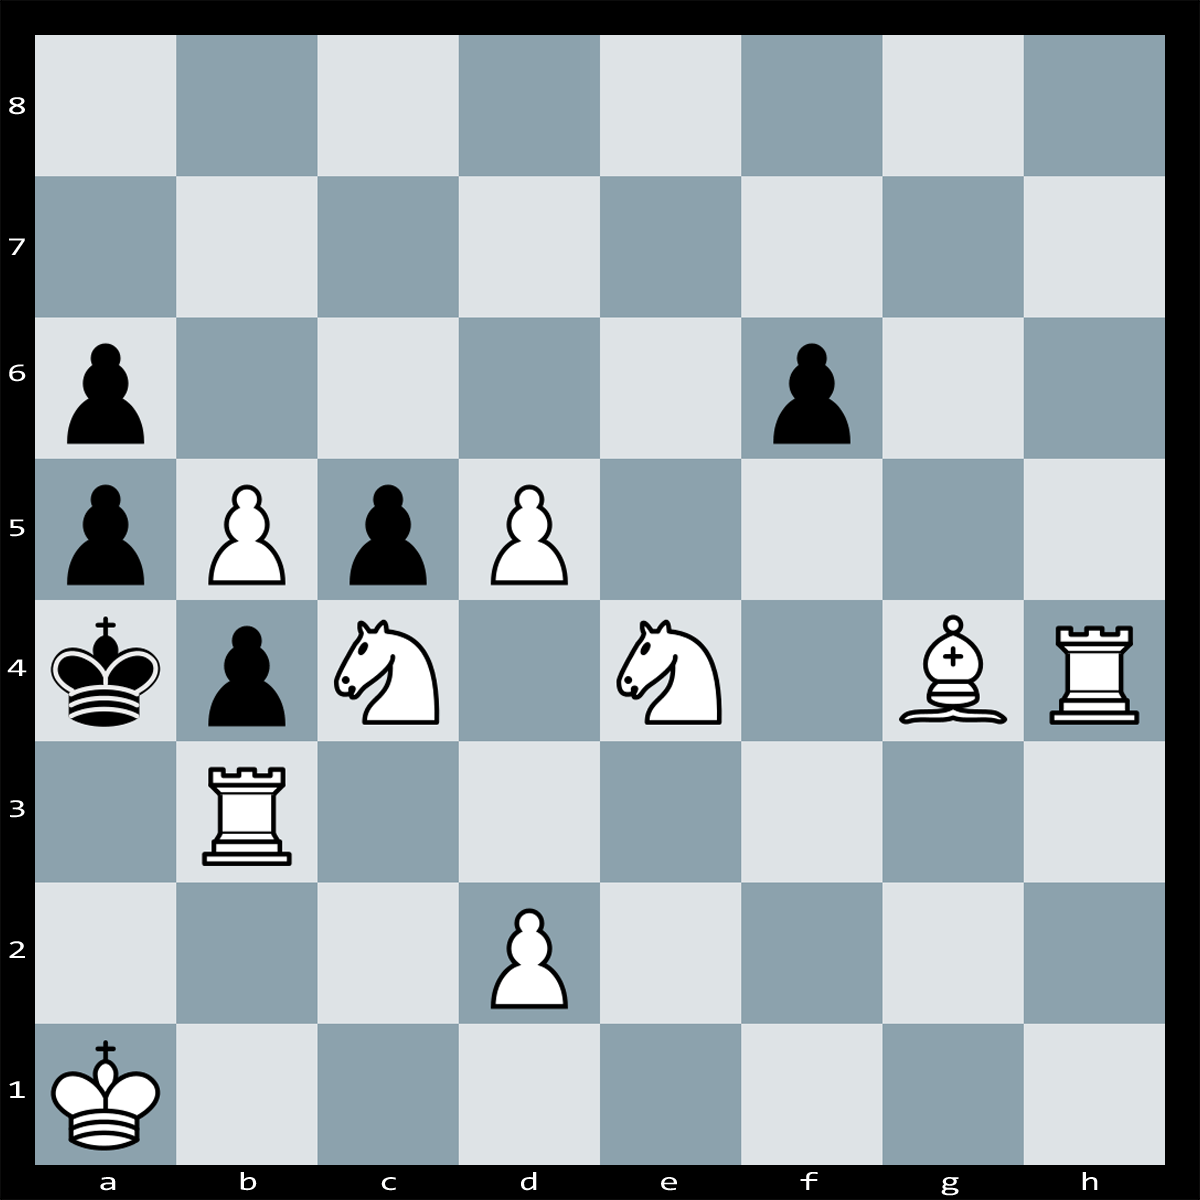 Mate in two moves, White to Play | Puzzle #109